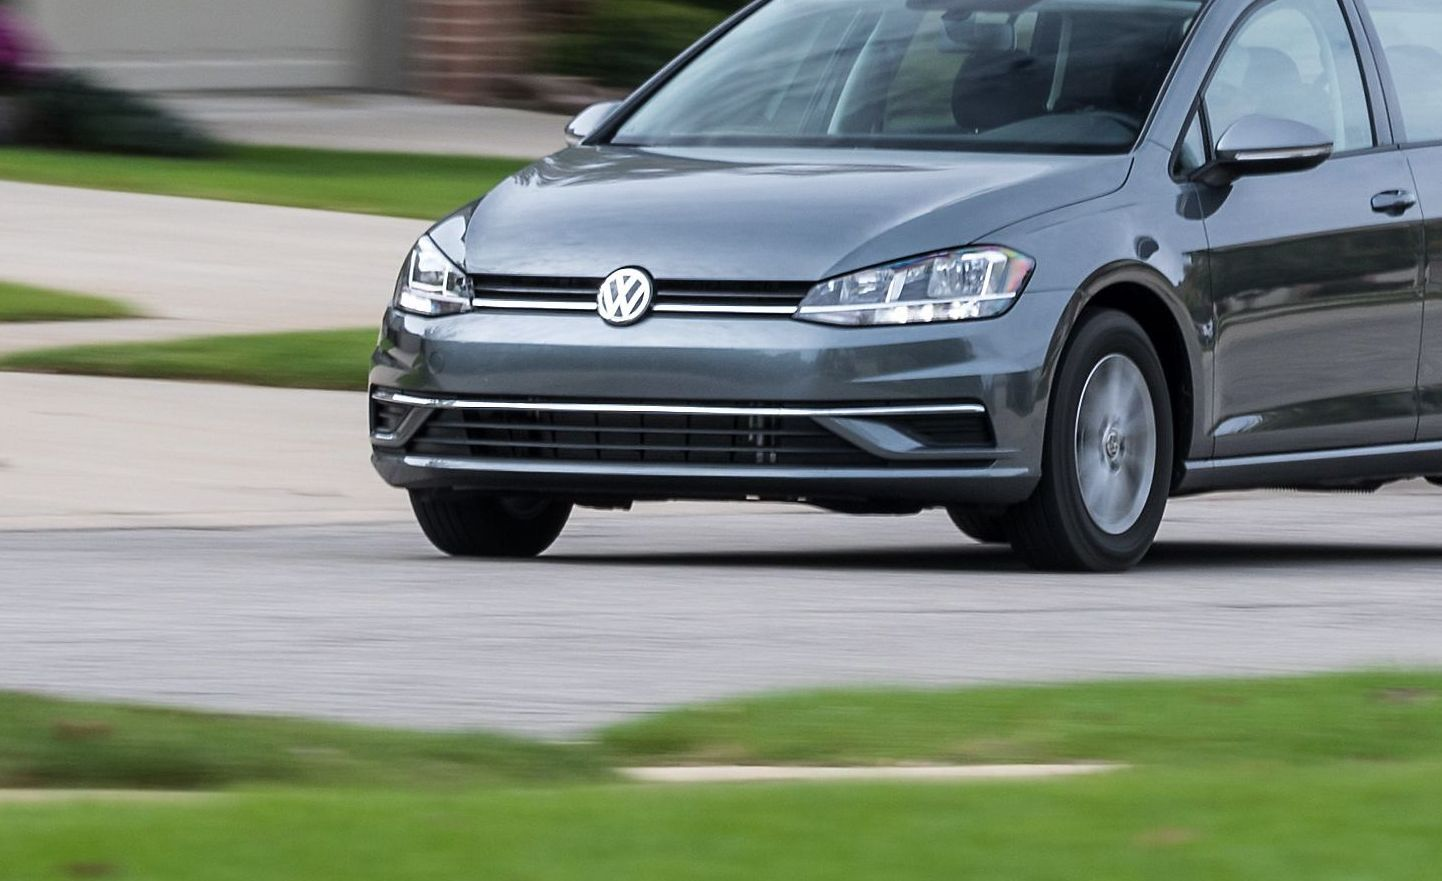 2019 Volkswagen Golf 1.4T